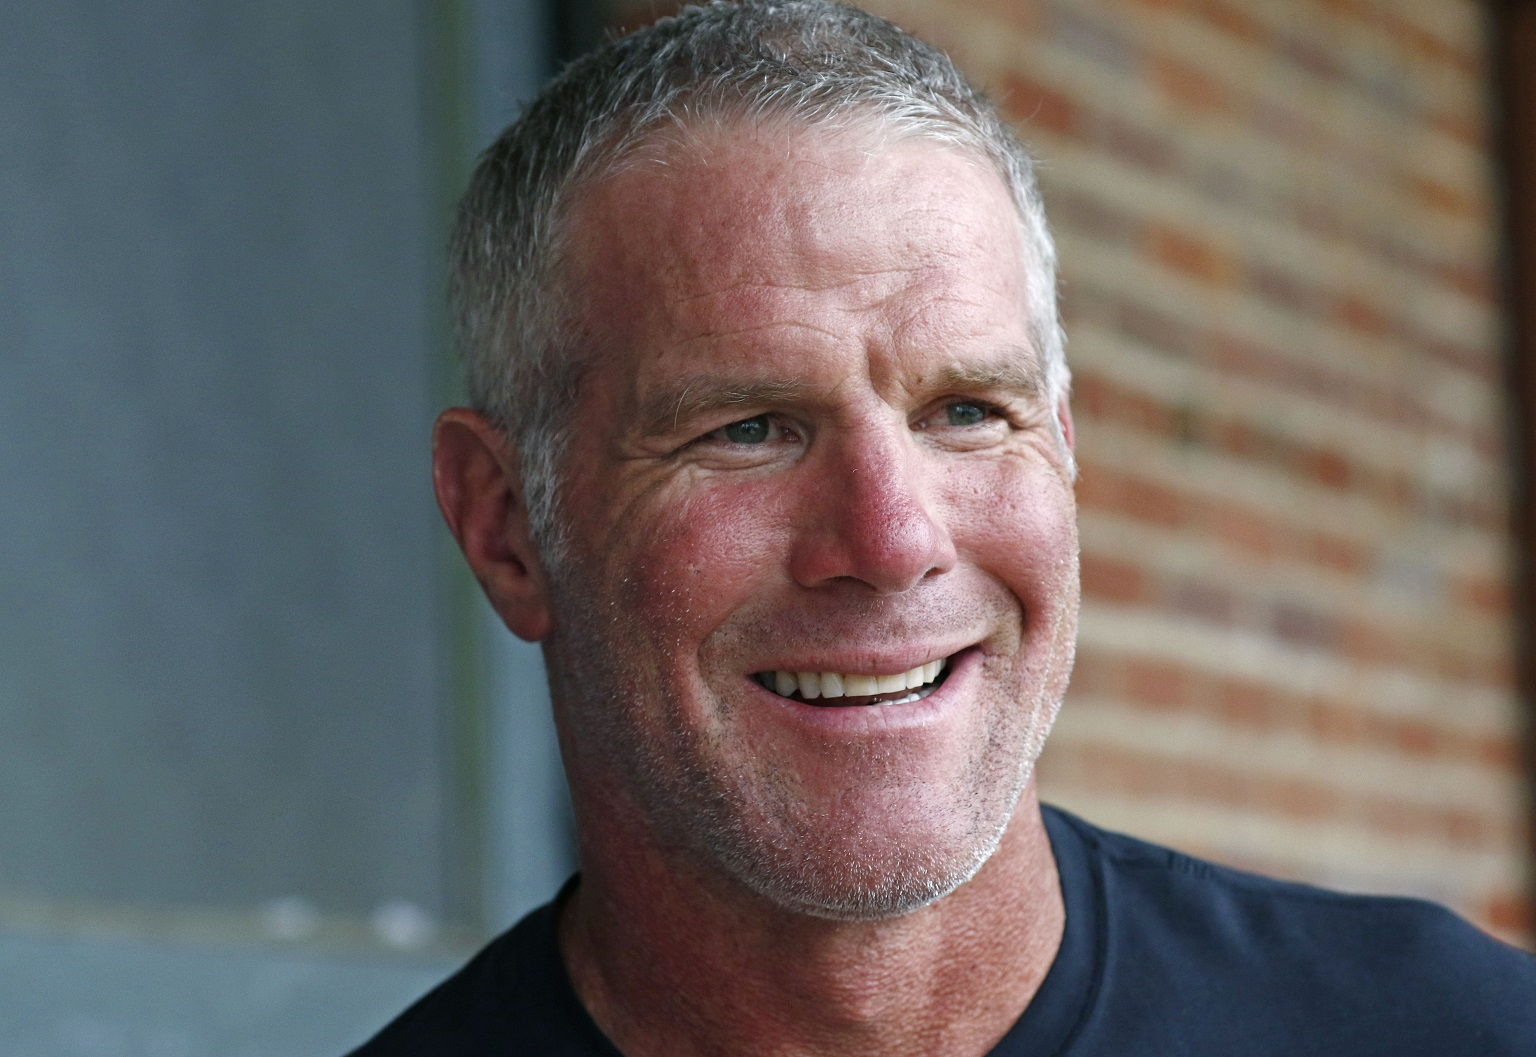 Packers legend Brett Favre talks Mahomes, Super Bowl and can't pick a favorite